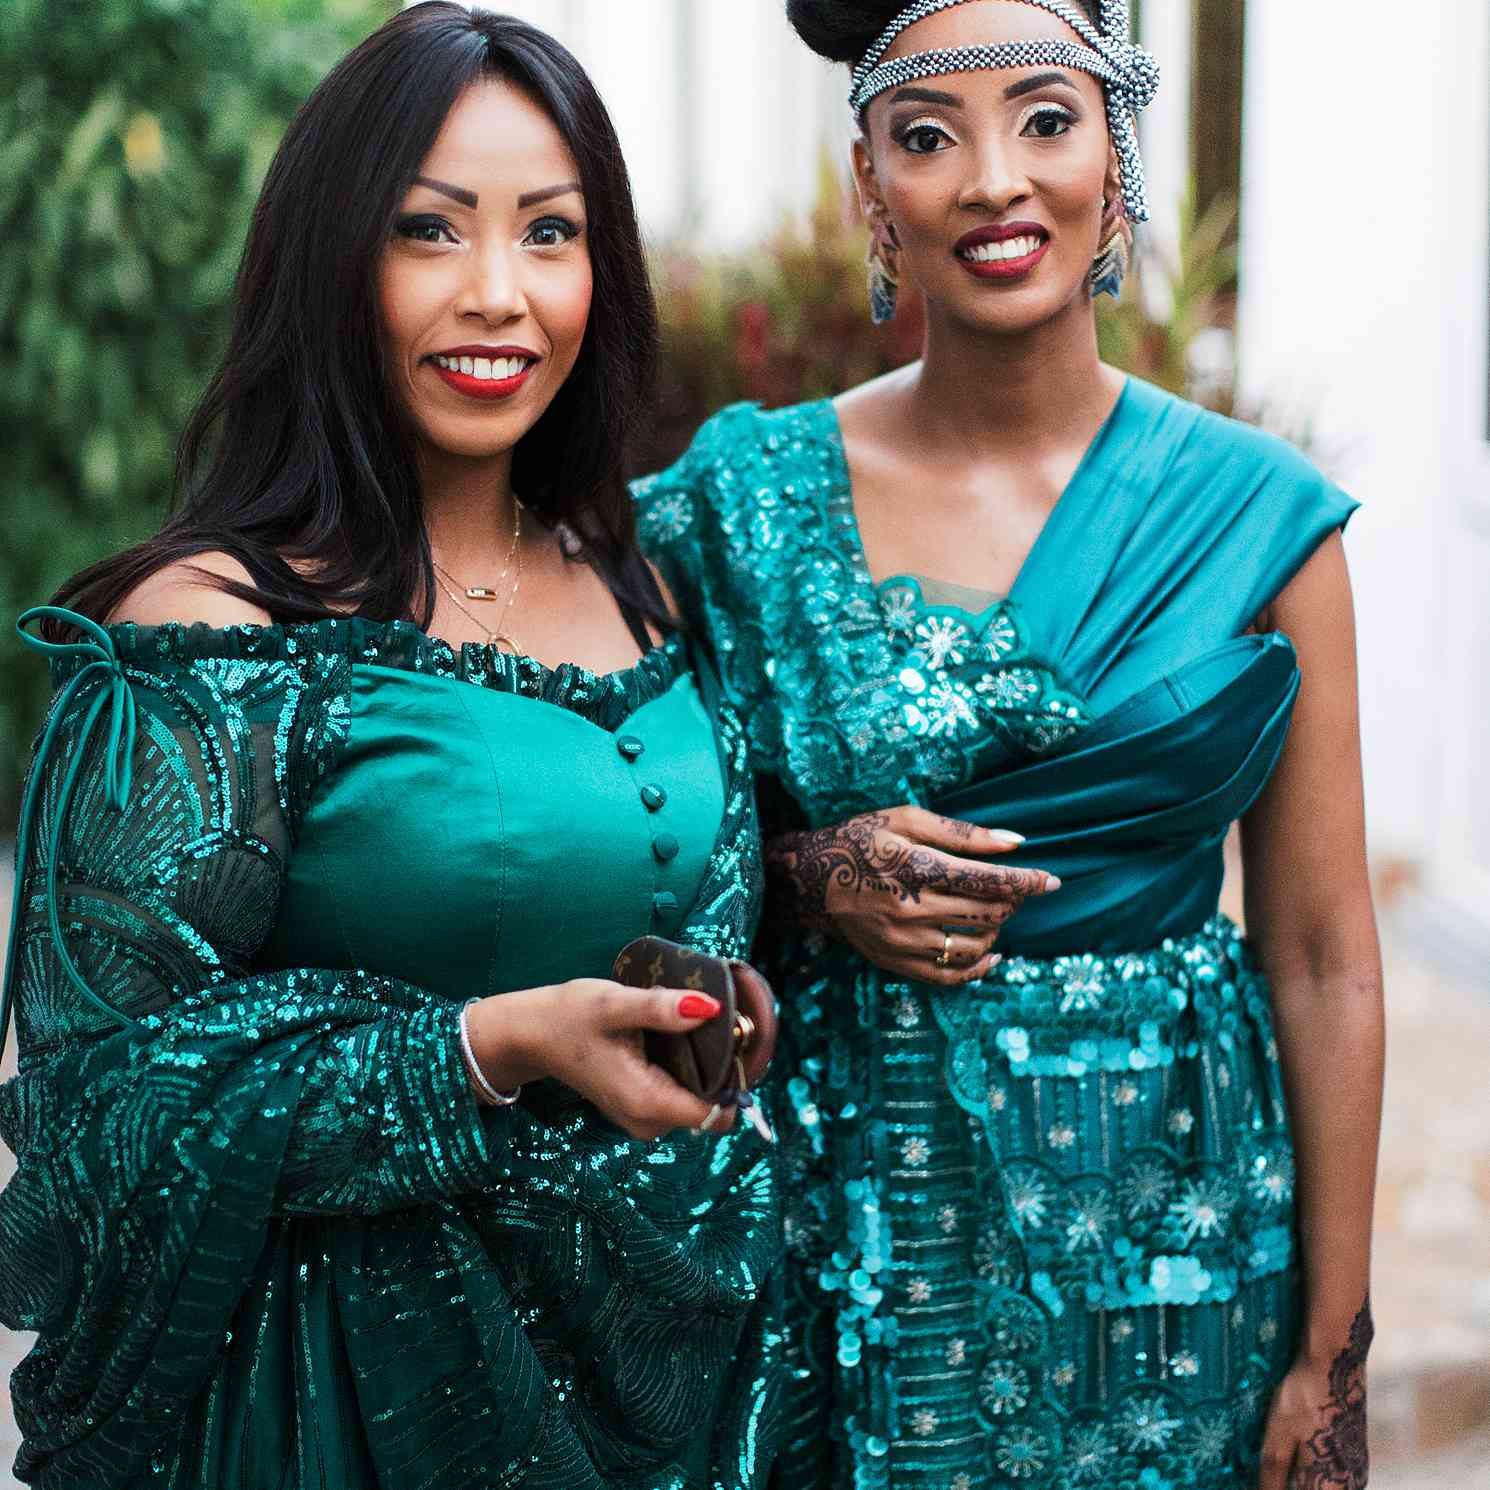 two women posing for a photo at a wedding